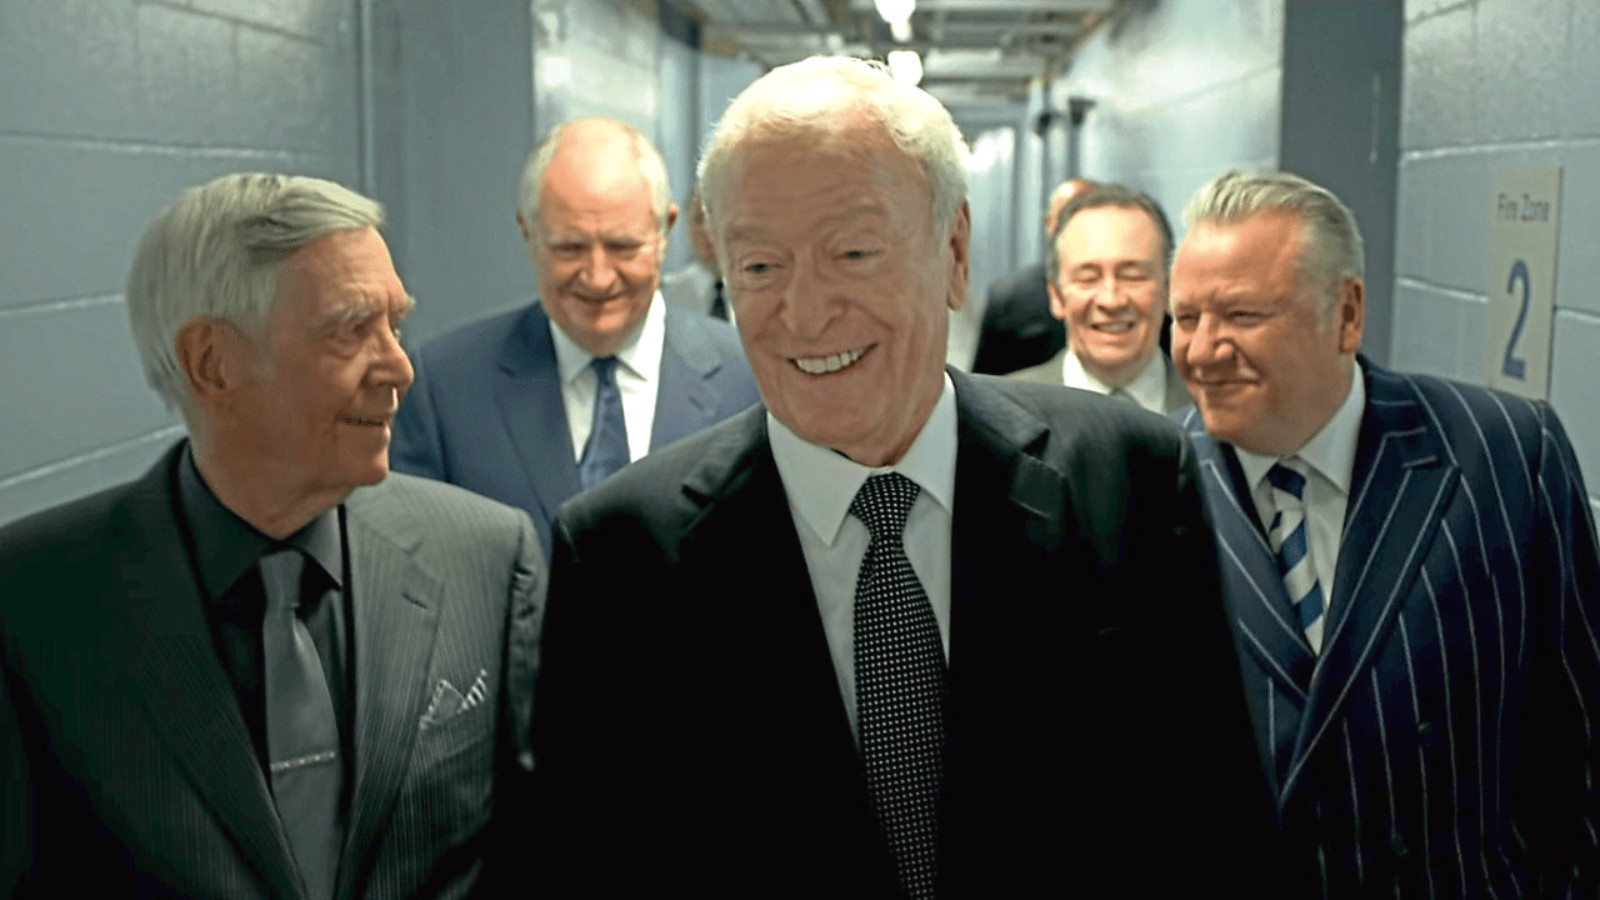 King of Thieves has a cast of British acting royalty